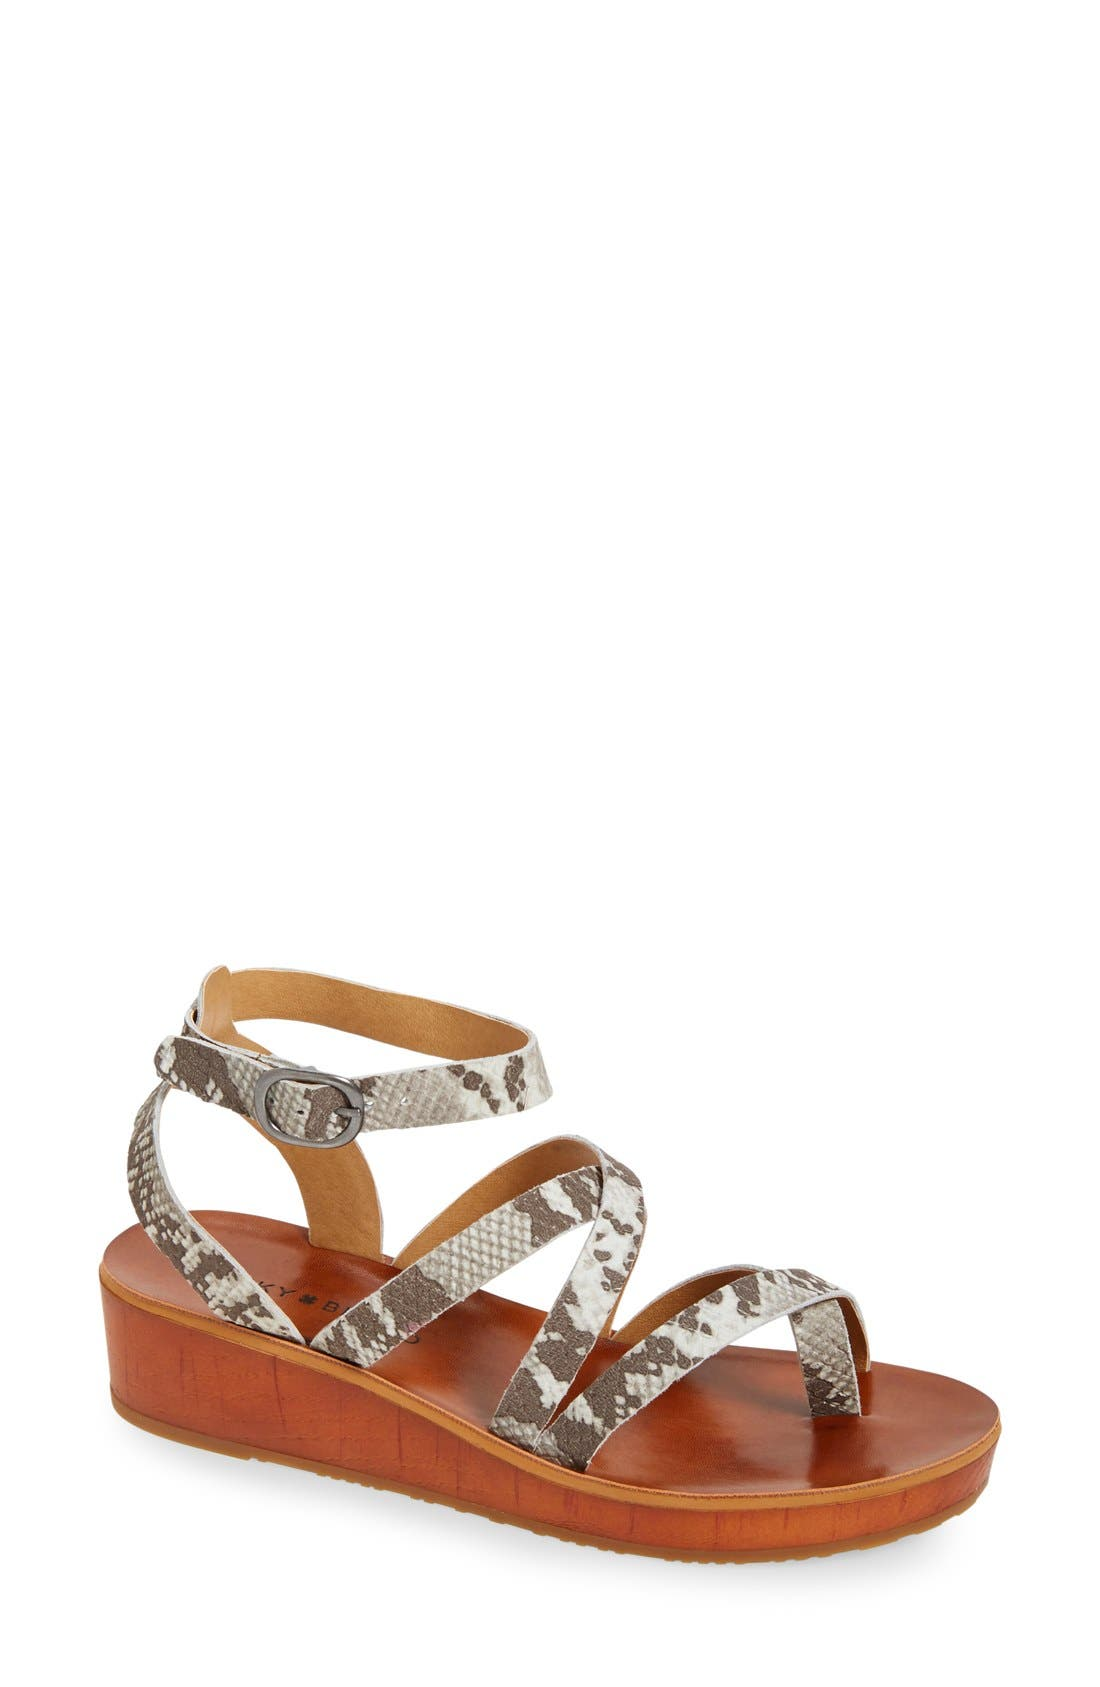 'Honeyy' Platform Sandal,                         Main,                         color, 020